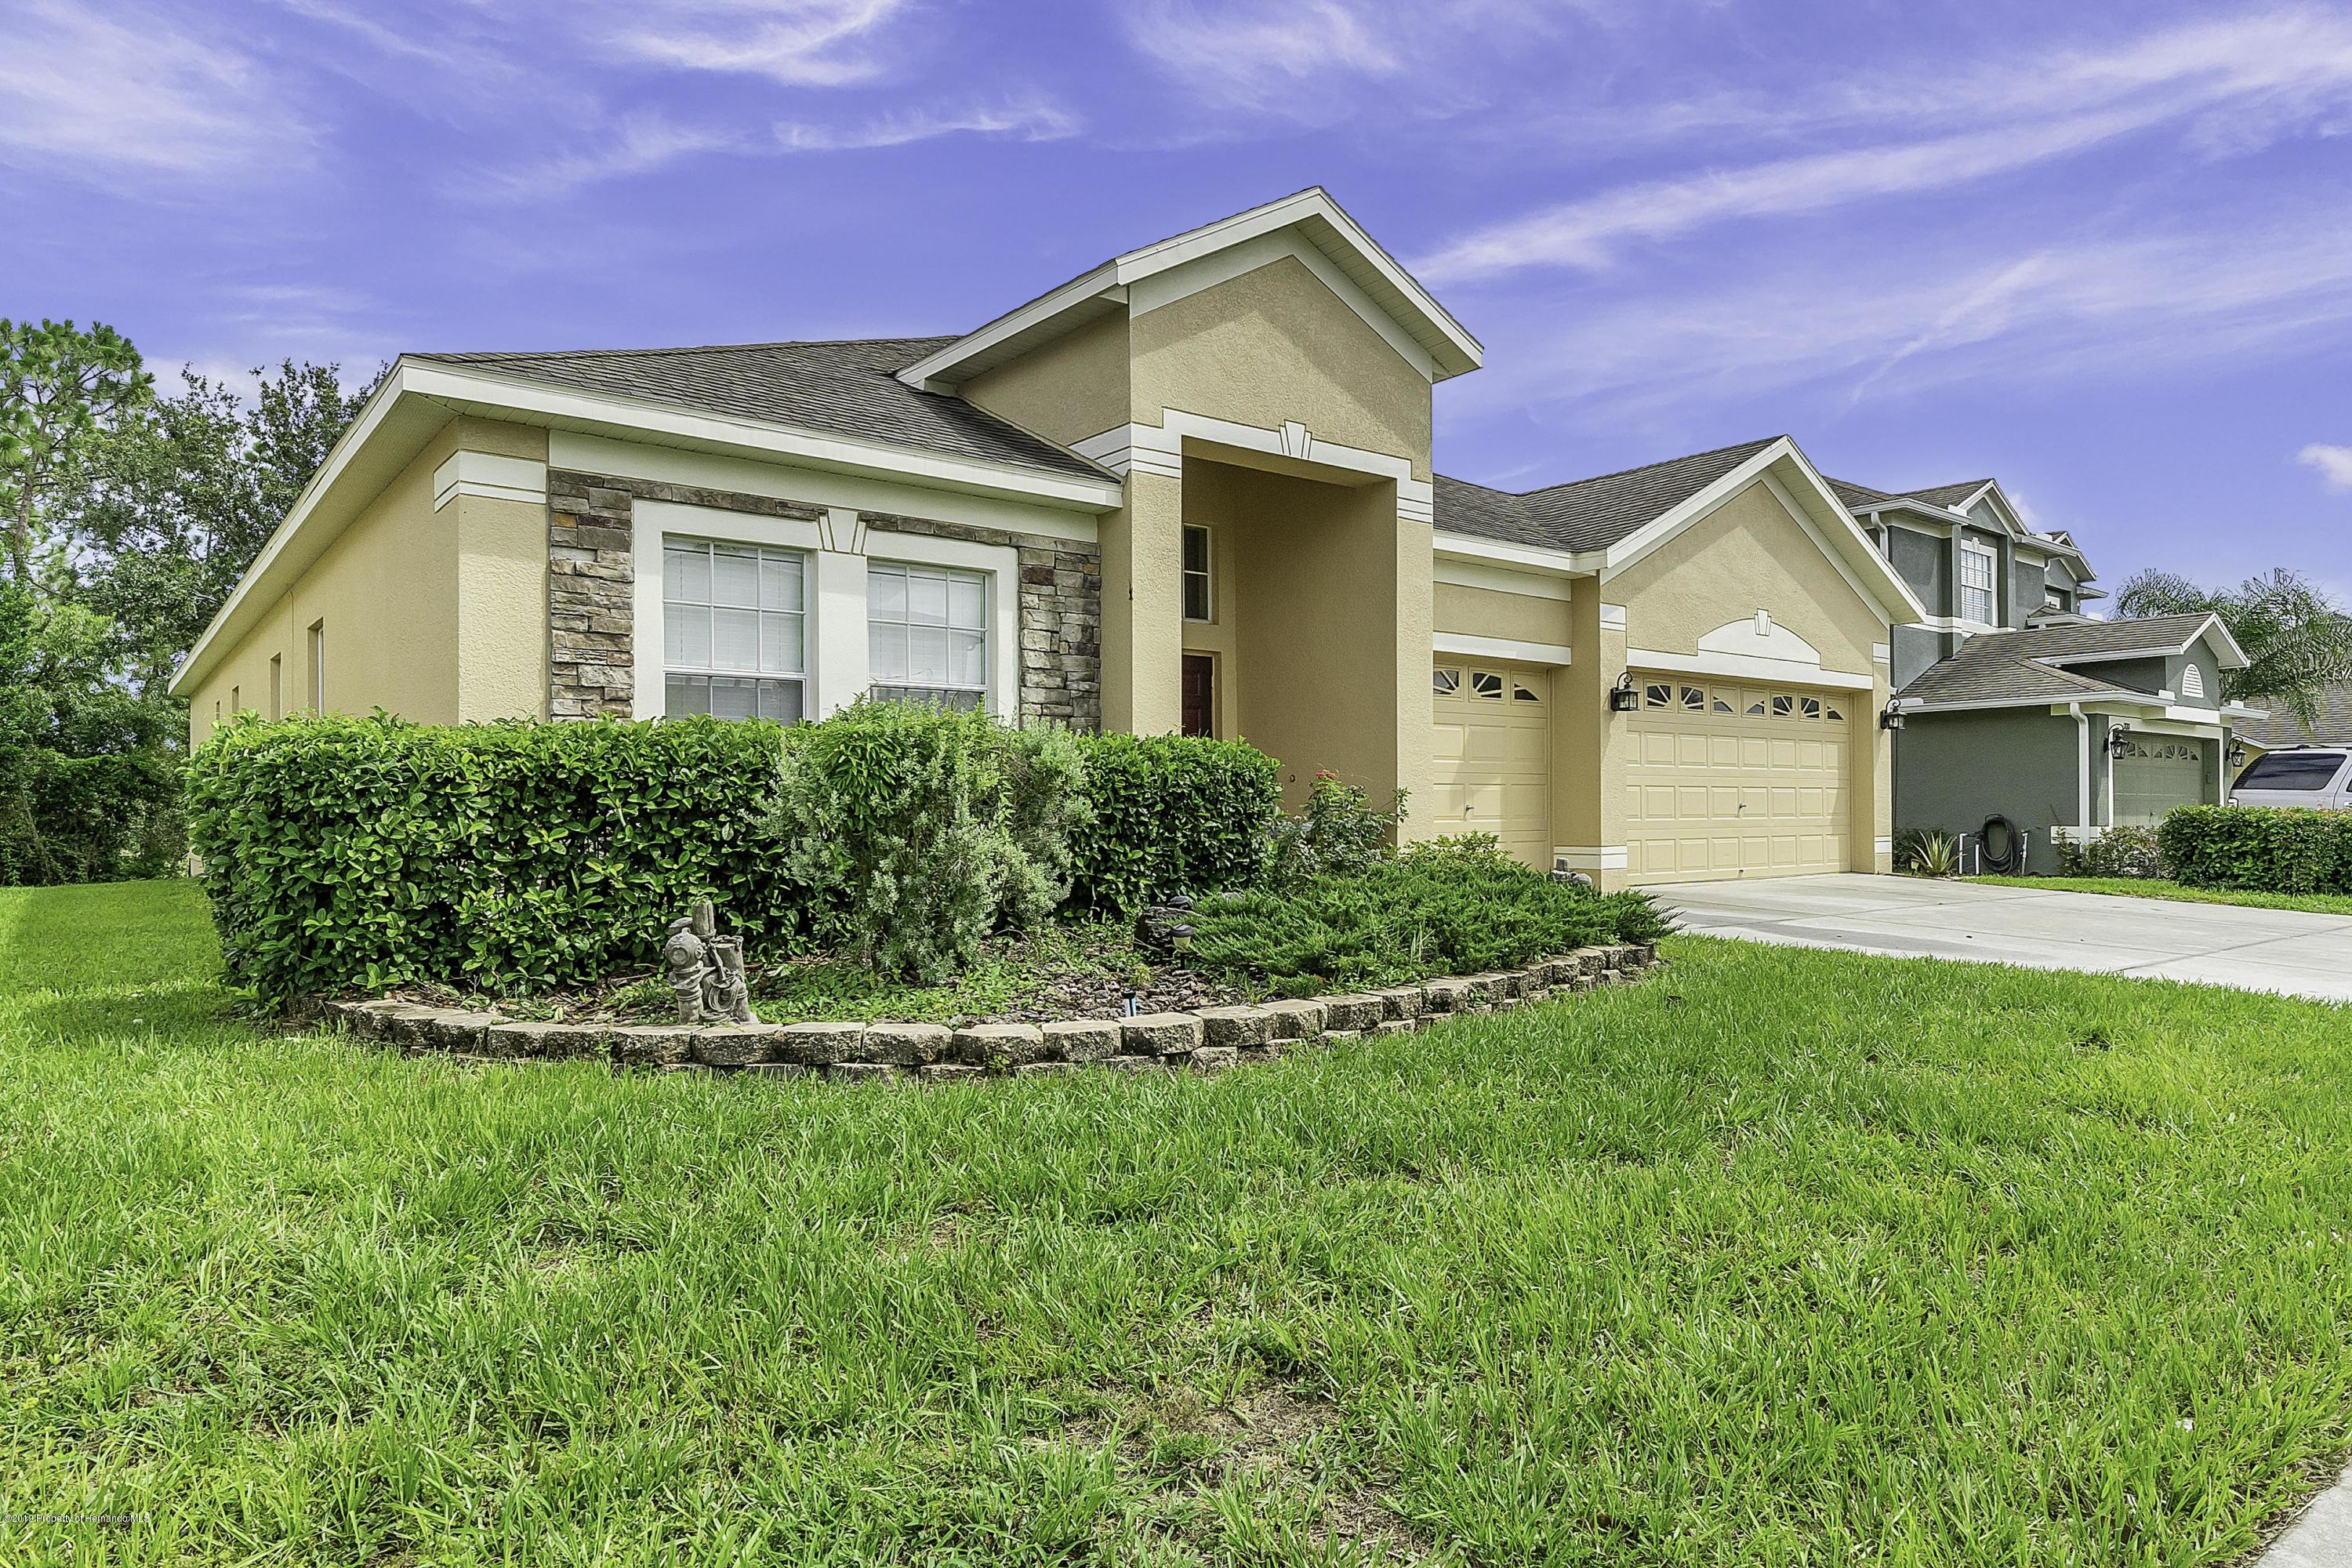 3892 Braemere Drive, Spring Hill, Florida 34609, 5 Bedrooms Bedrooms, ,3 BathroomsBathrooms,Residential,For Sale,Braemere,2201885